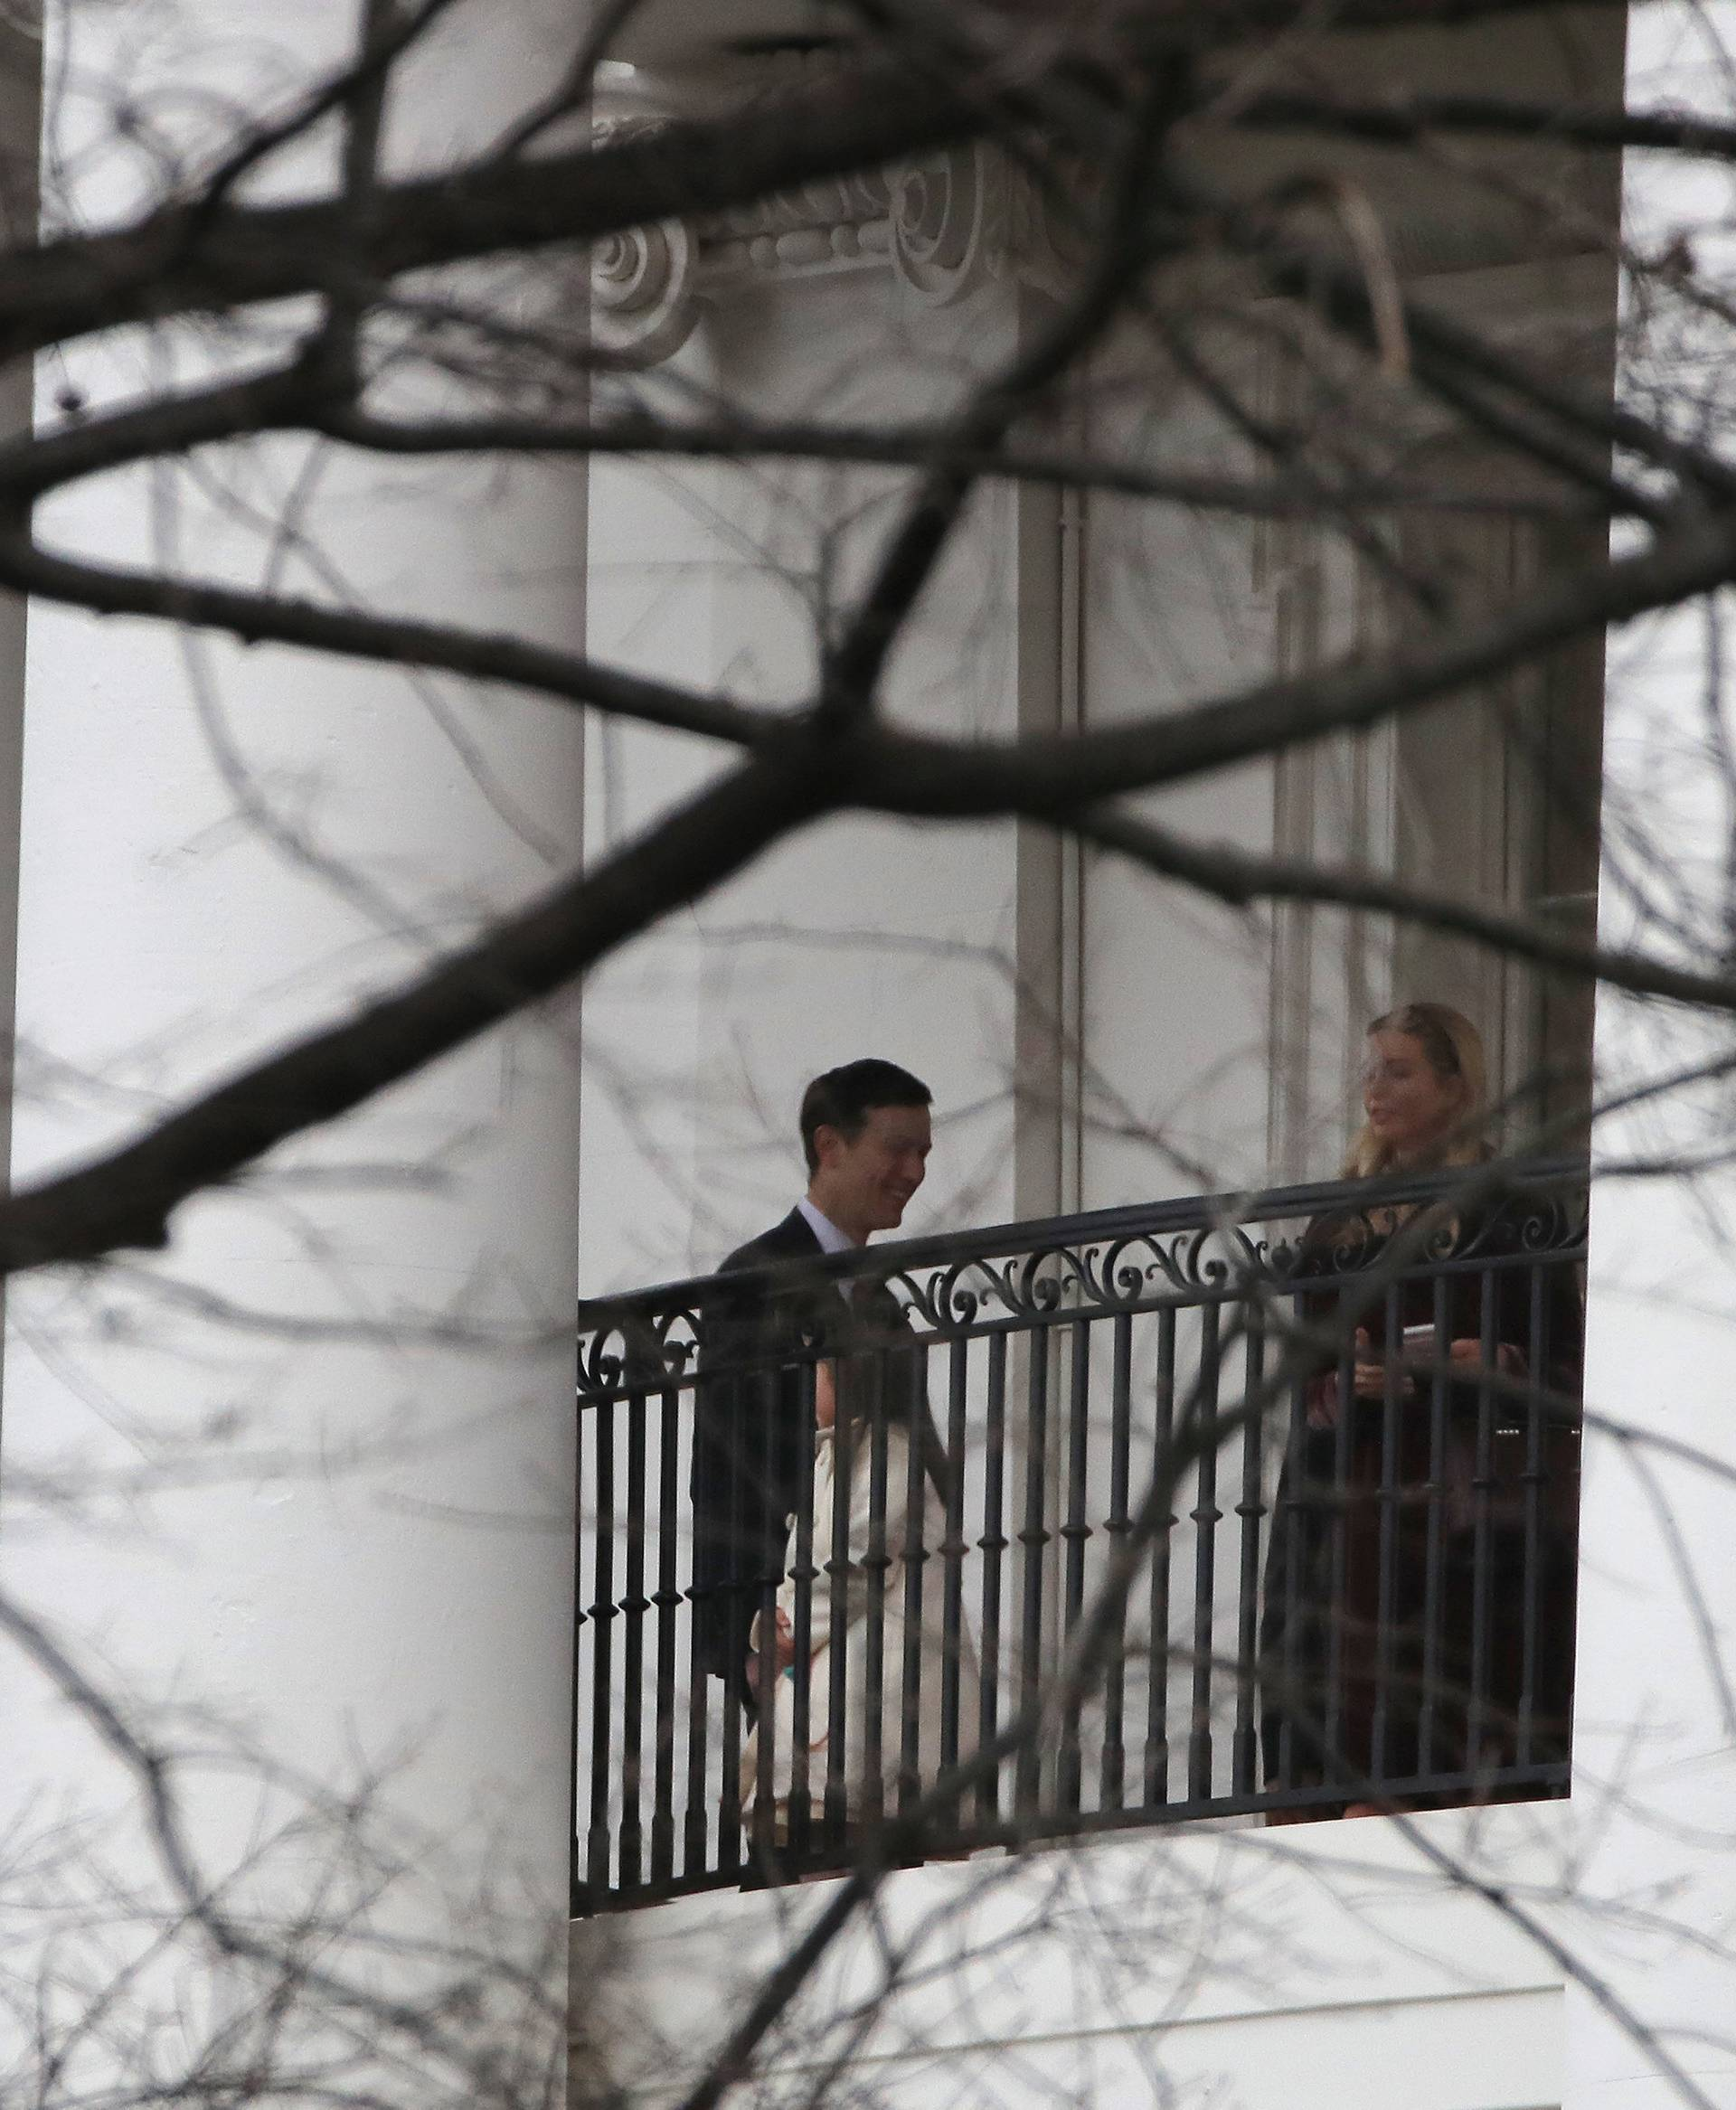 Ivanka Trump, her husband, Jared Kushner and their daughter Arabella stand on a balcony of the White House before departure for a church service in Washington, U.S.